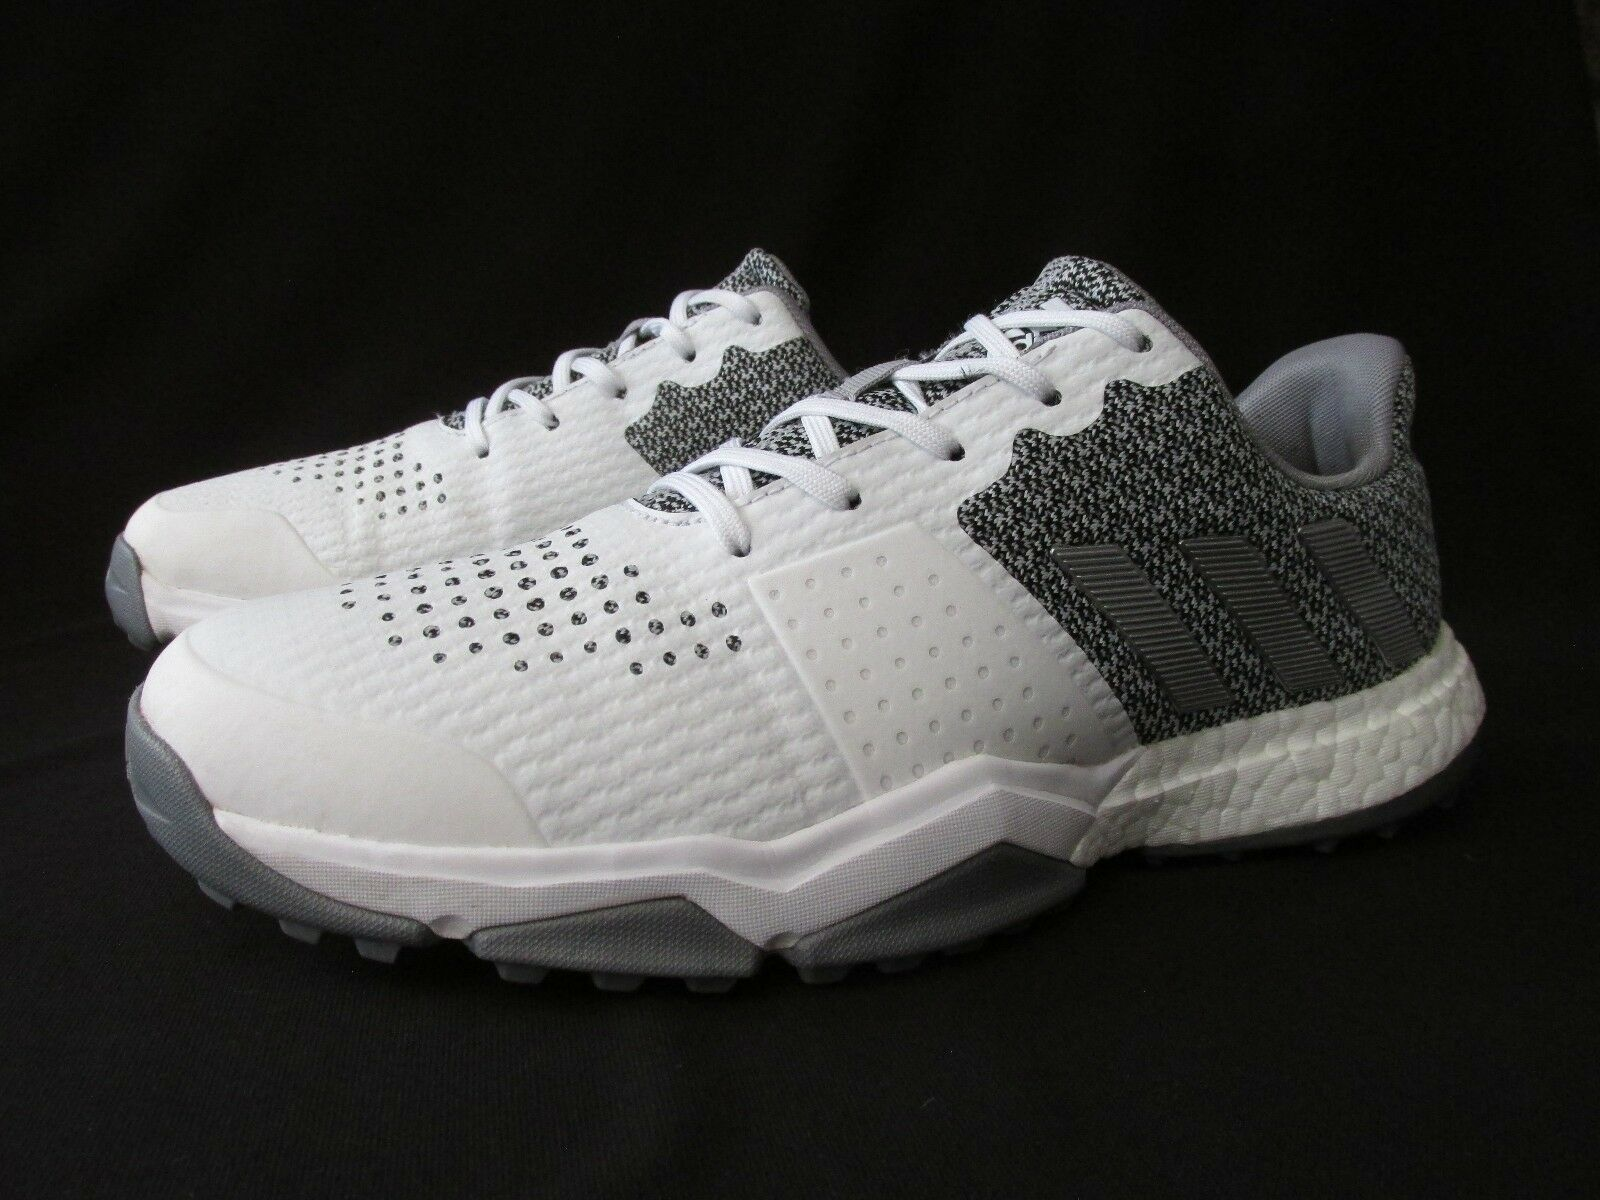 Adidas Adipower S Boost 3 White Silver Metallic Golf Shoes Men's 8.5M